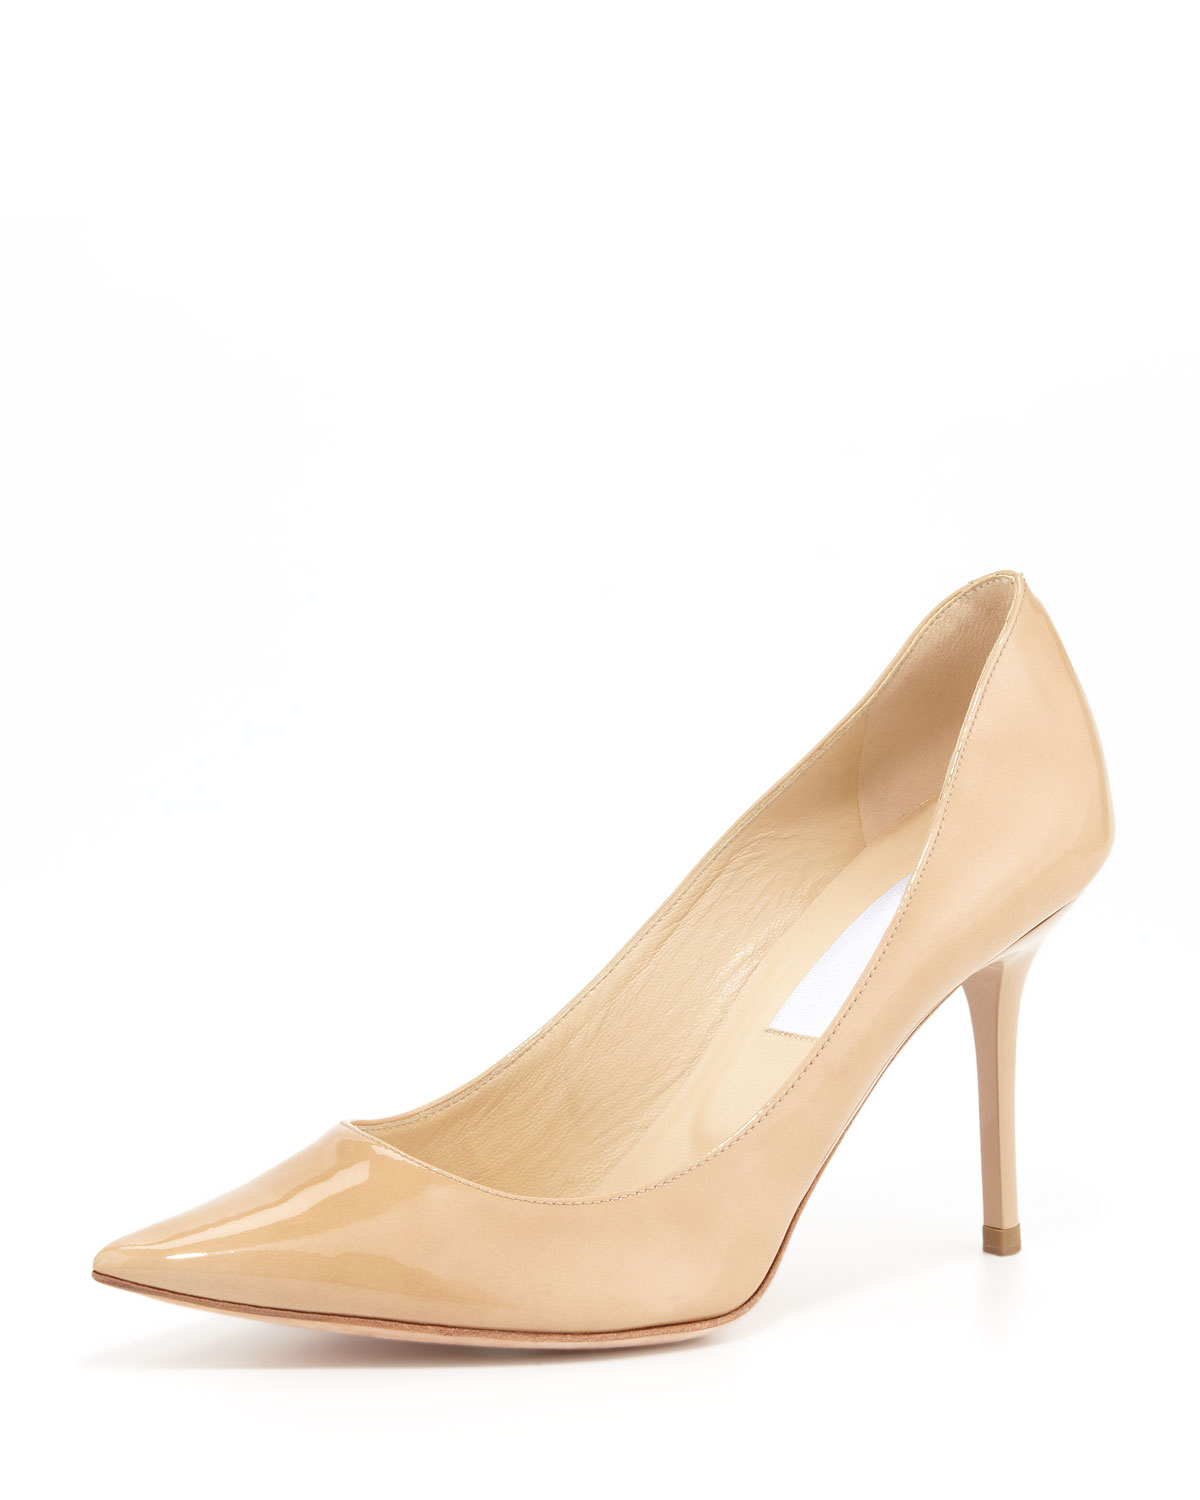 Jimmy Choo Abel Leather Pointy-Toe Pump, Nude | Neiman Marcus